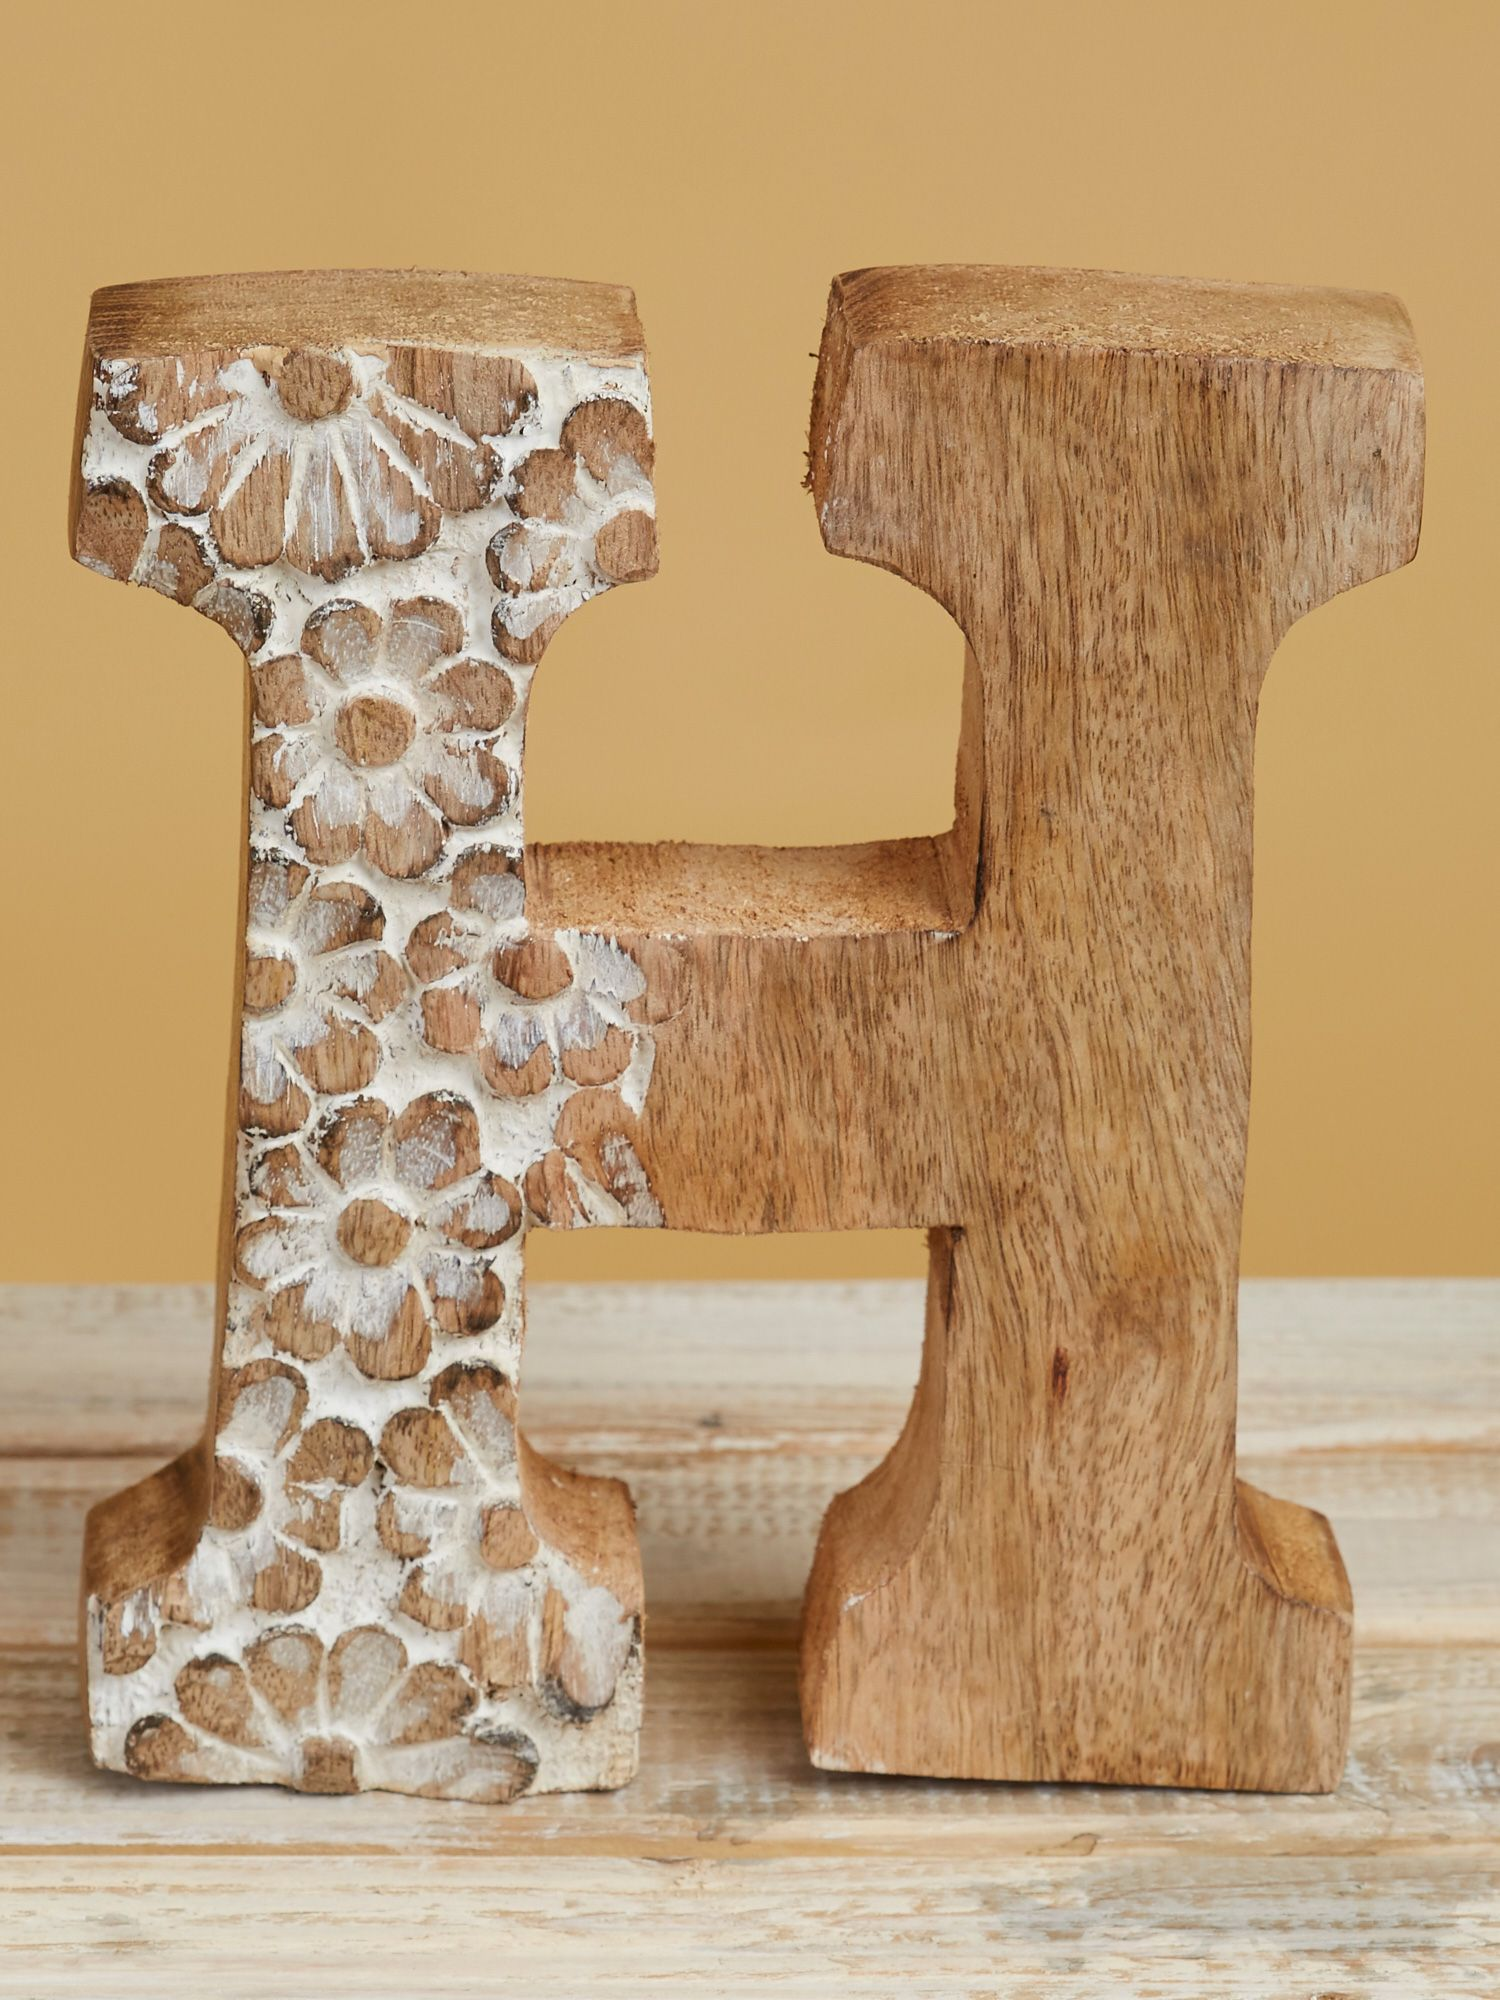 Wood Carved Letter H Shop The Look Products Wood Carving Home